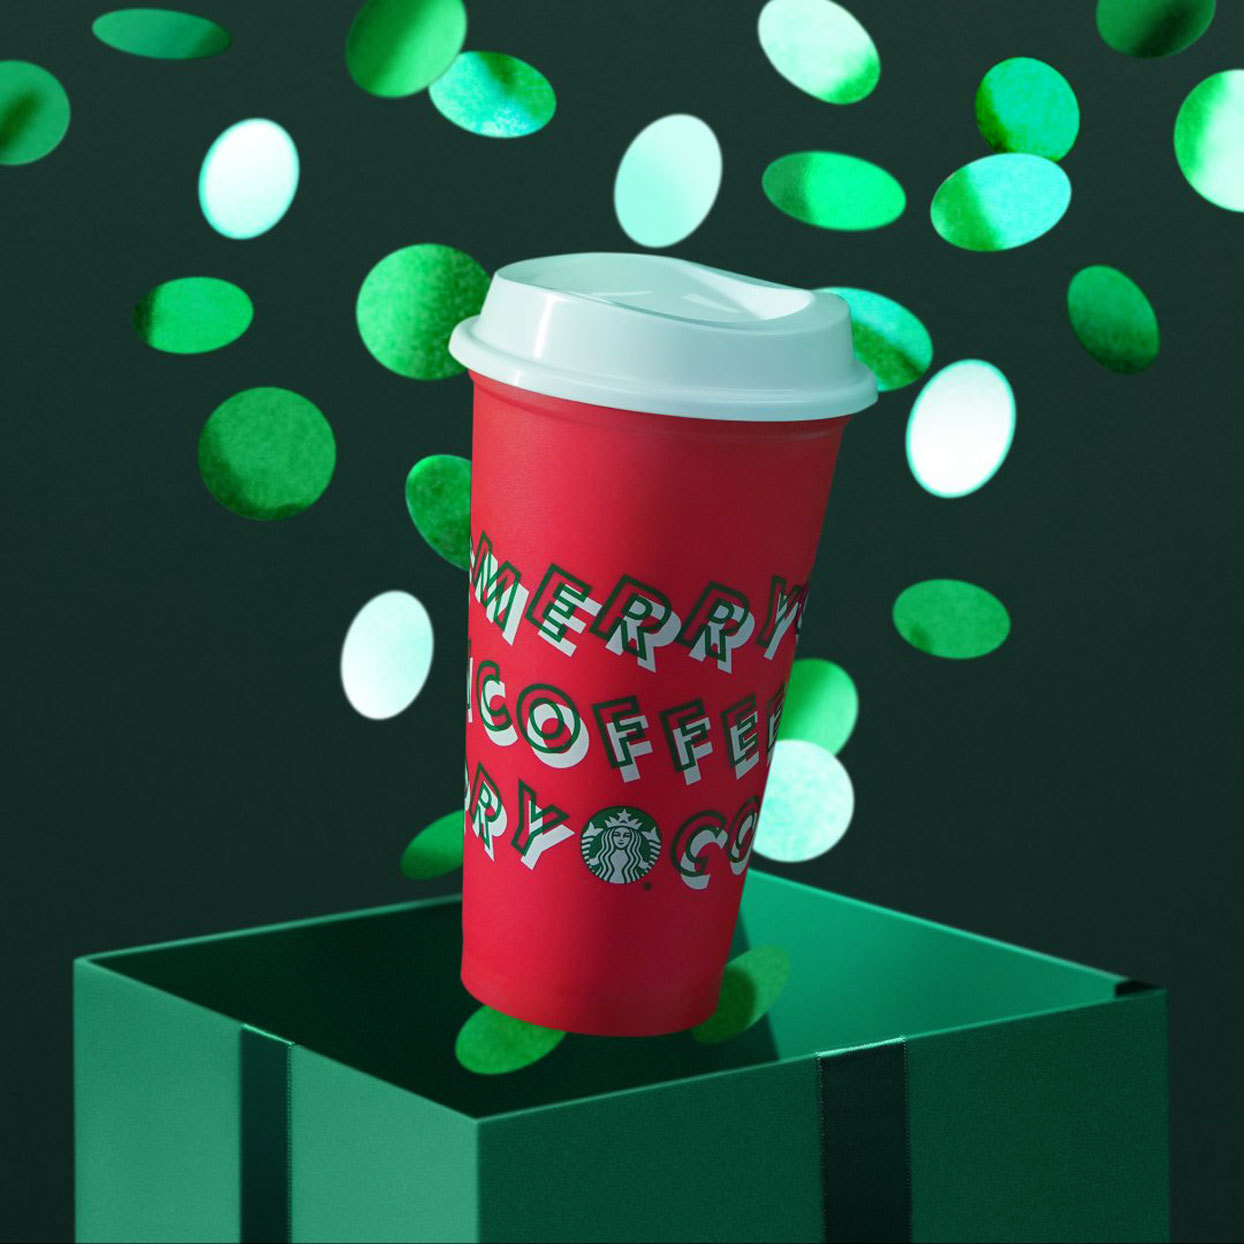 Merry Coffee Starbucks Cup